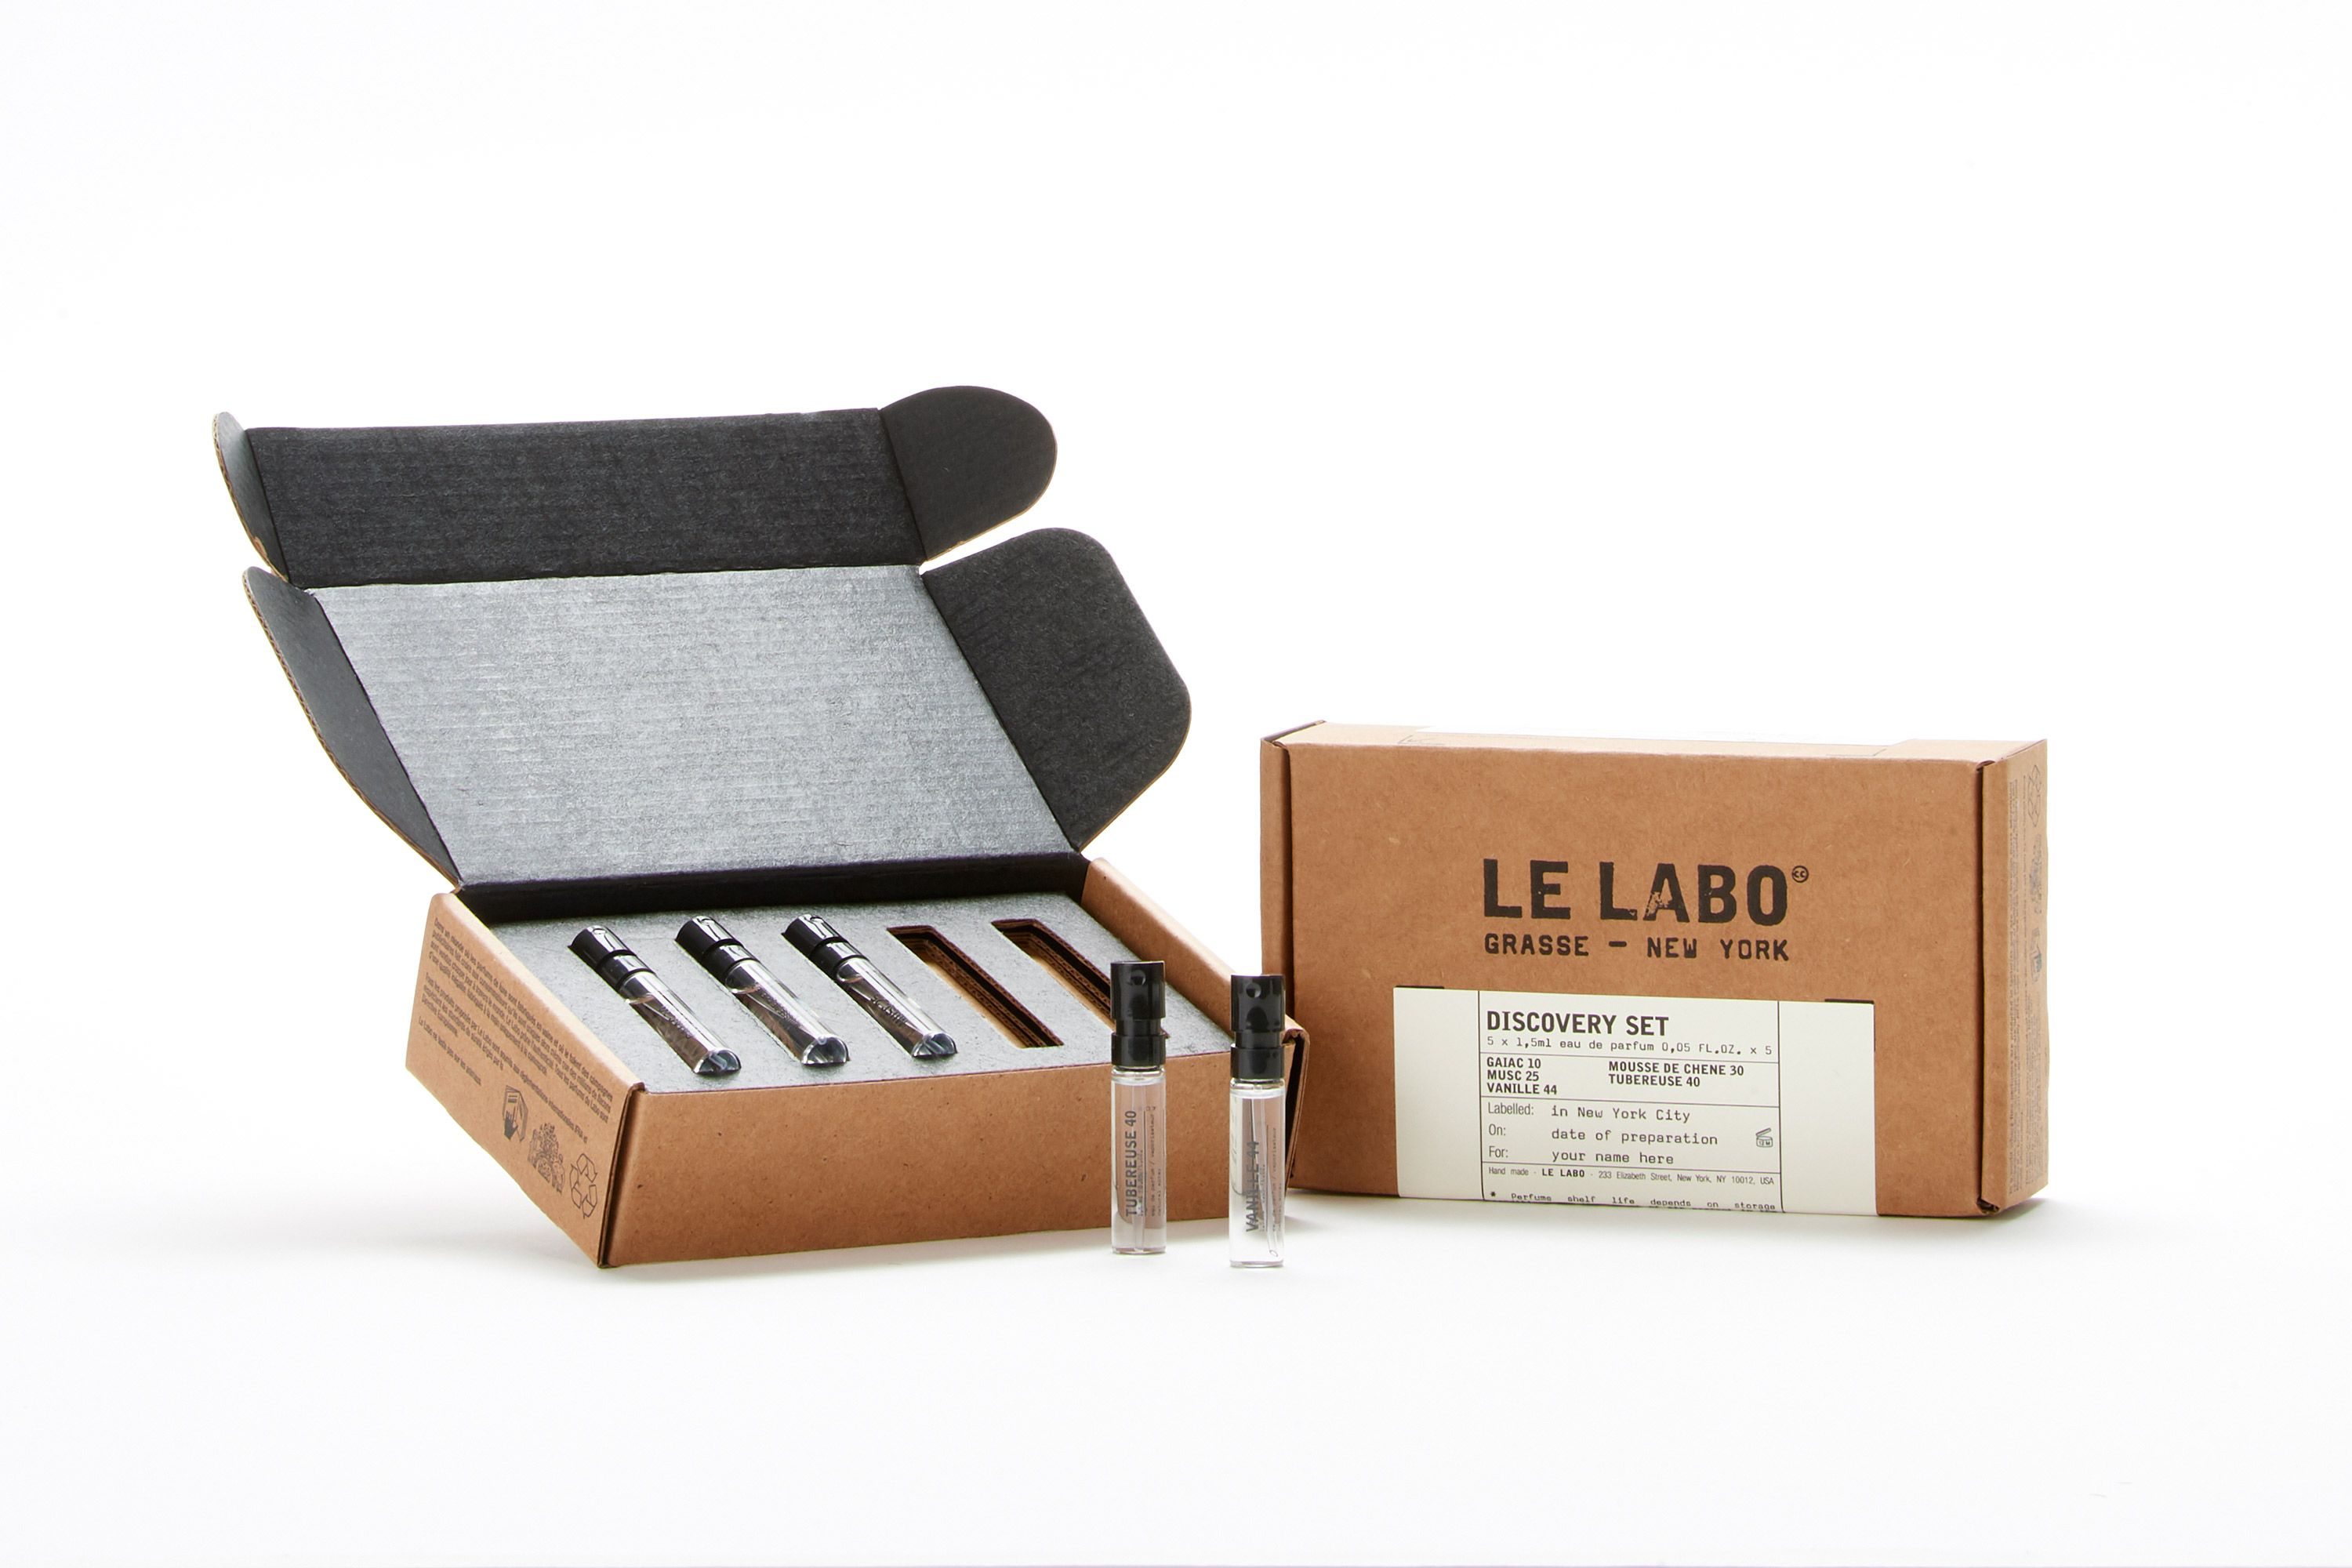 Le Labo fragrance